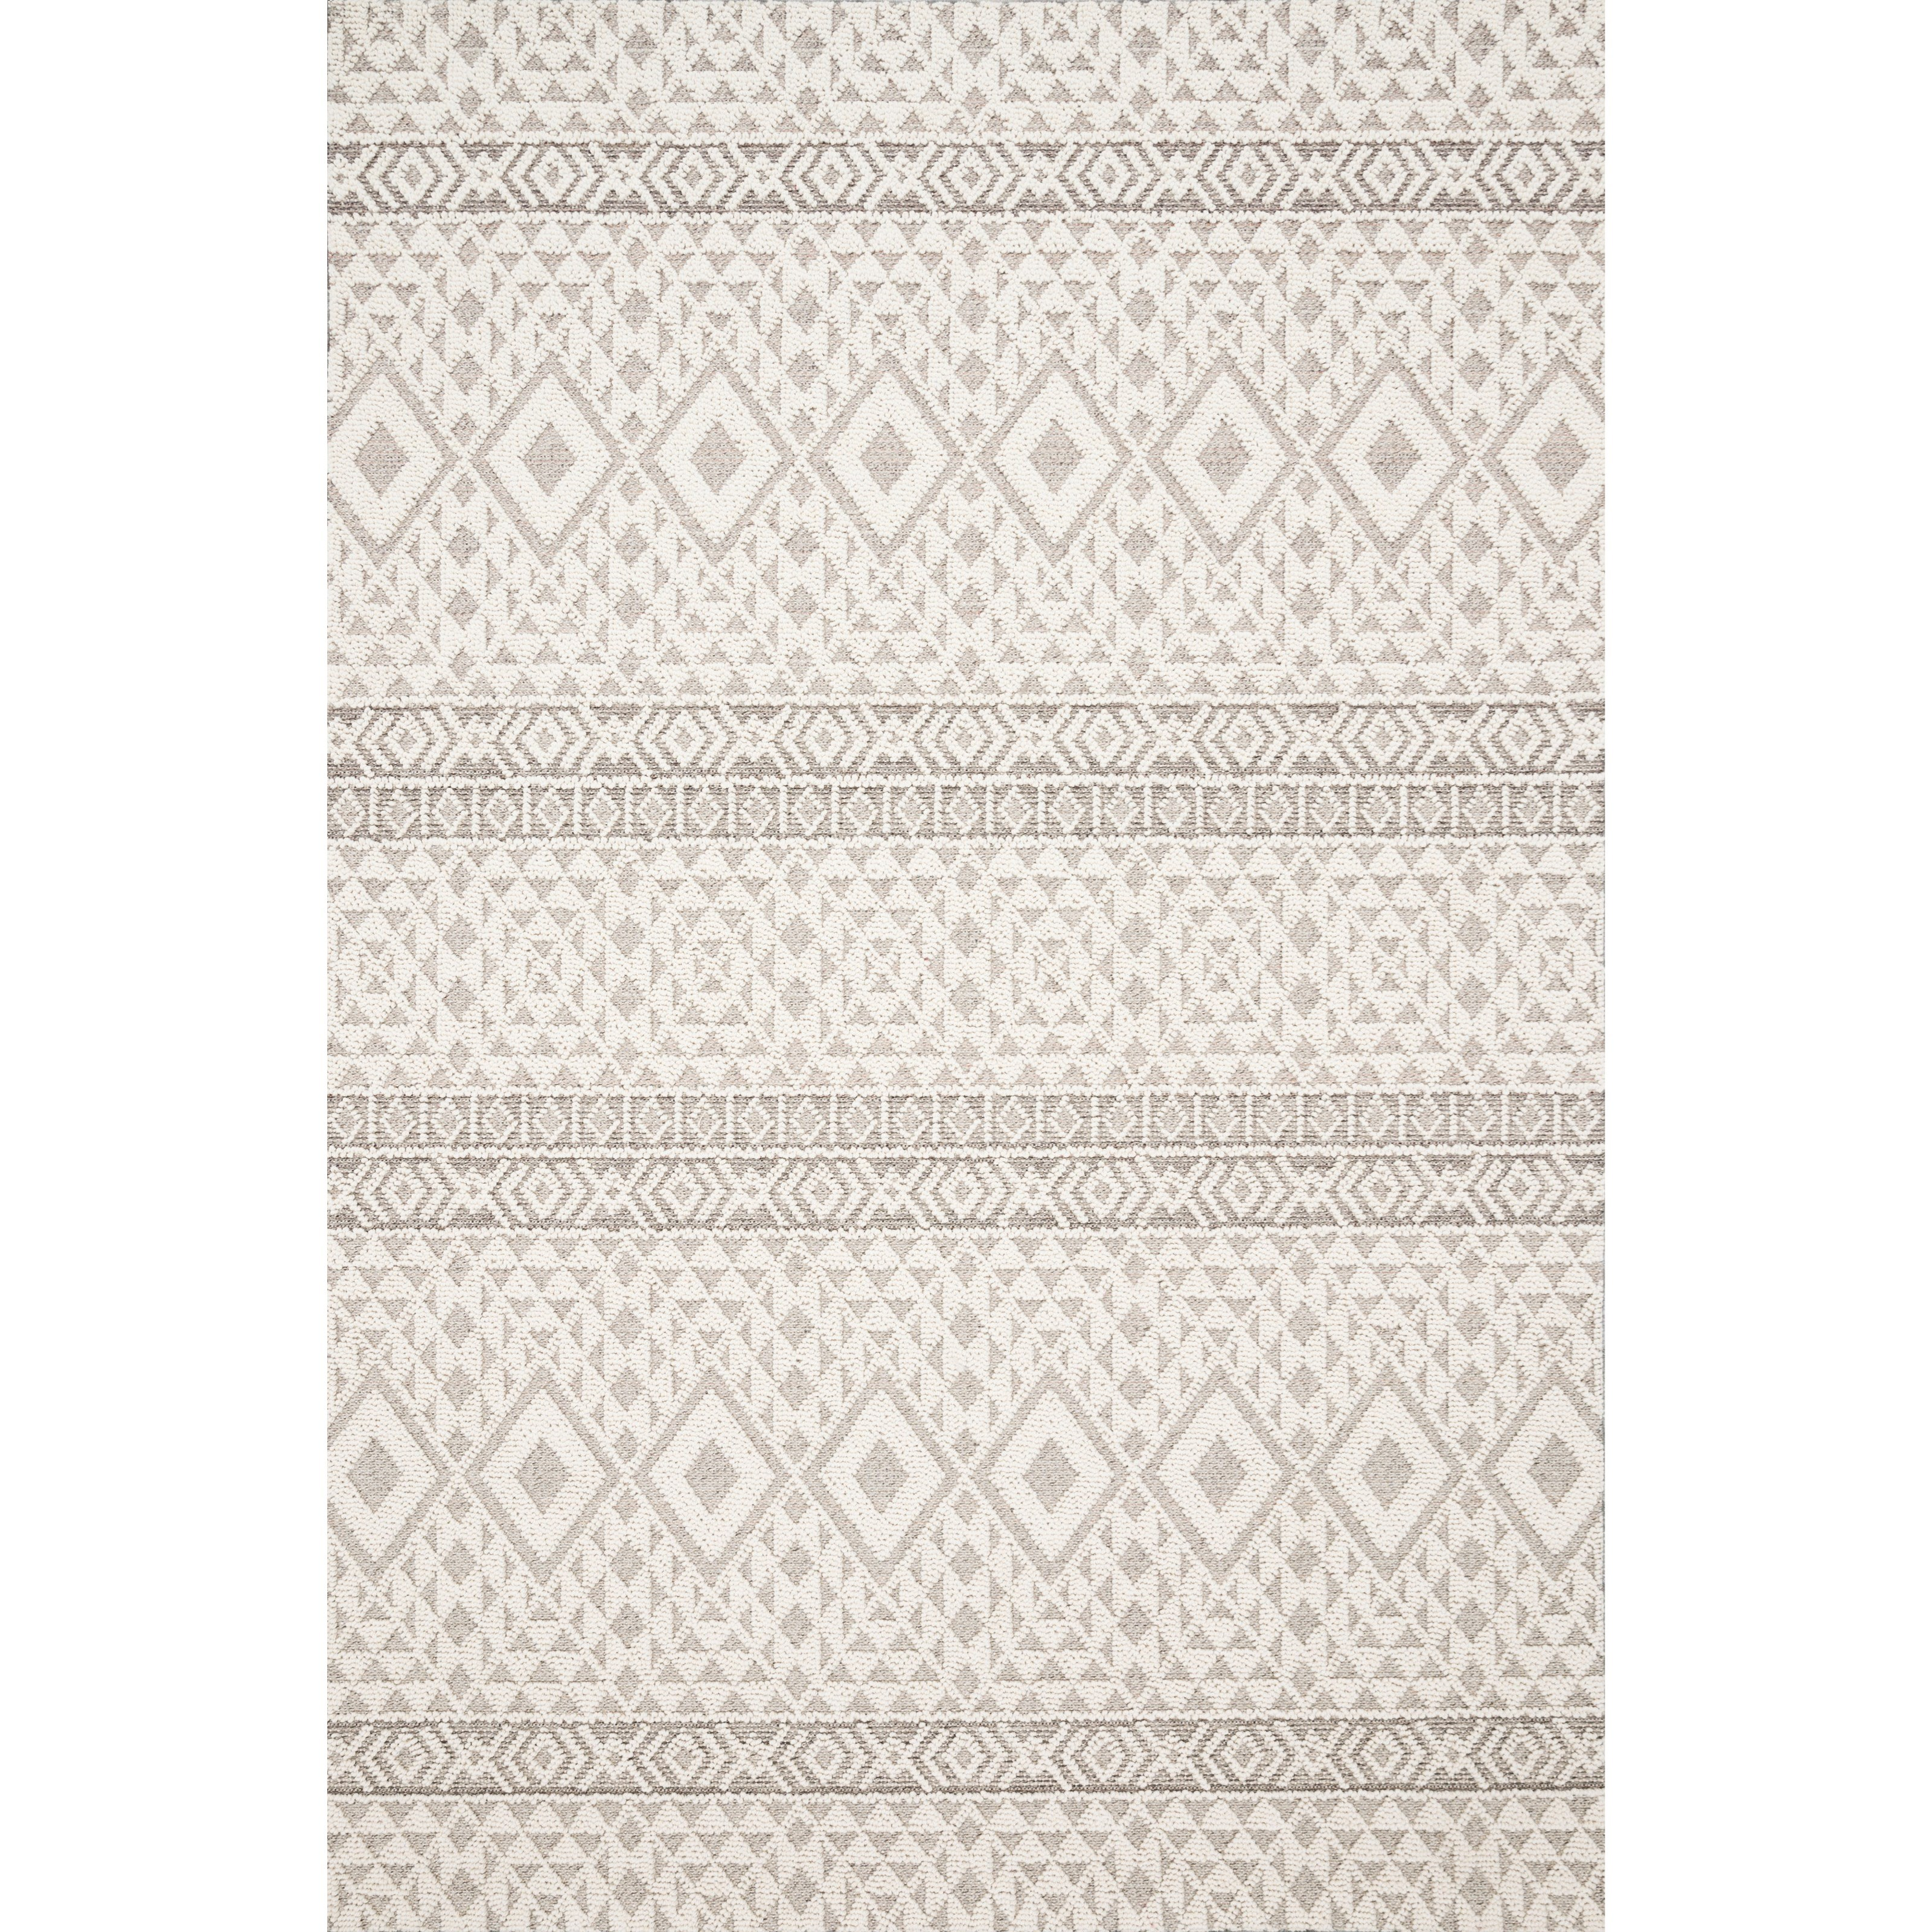 """Cole 2'1"""" x 3'4"""" Silver / Ivory Rug by Loloi Rugs at Virginia Furniture Market"""